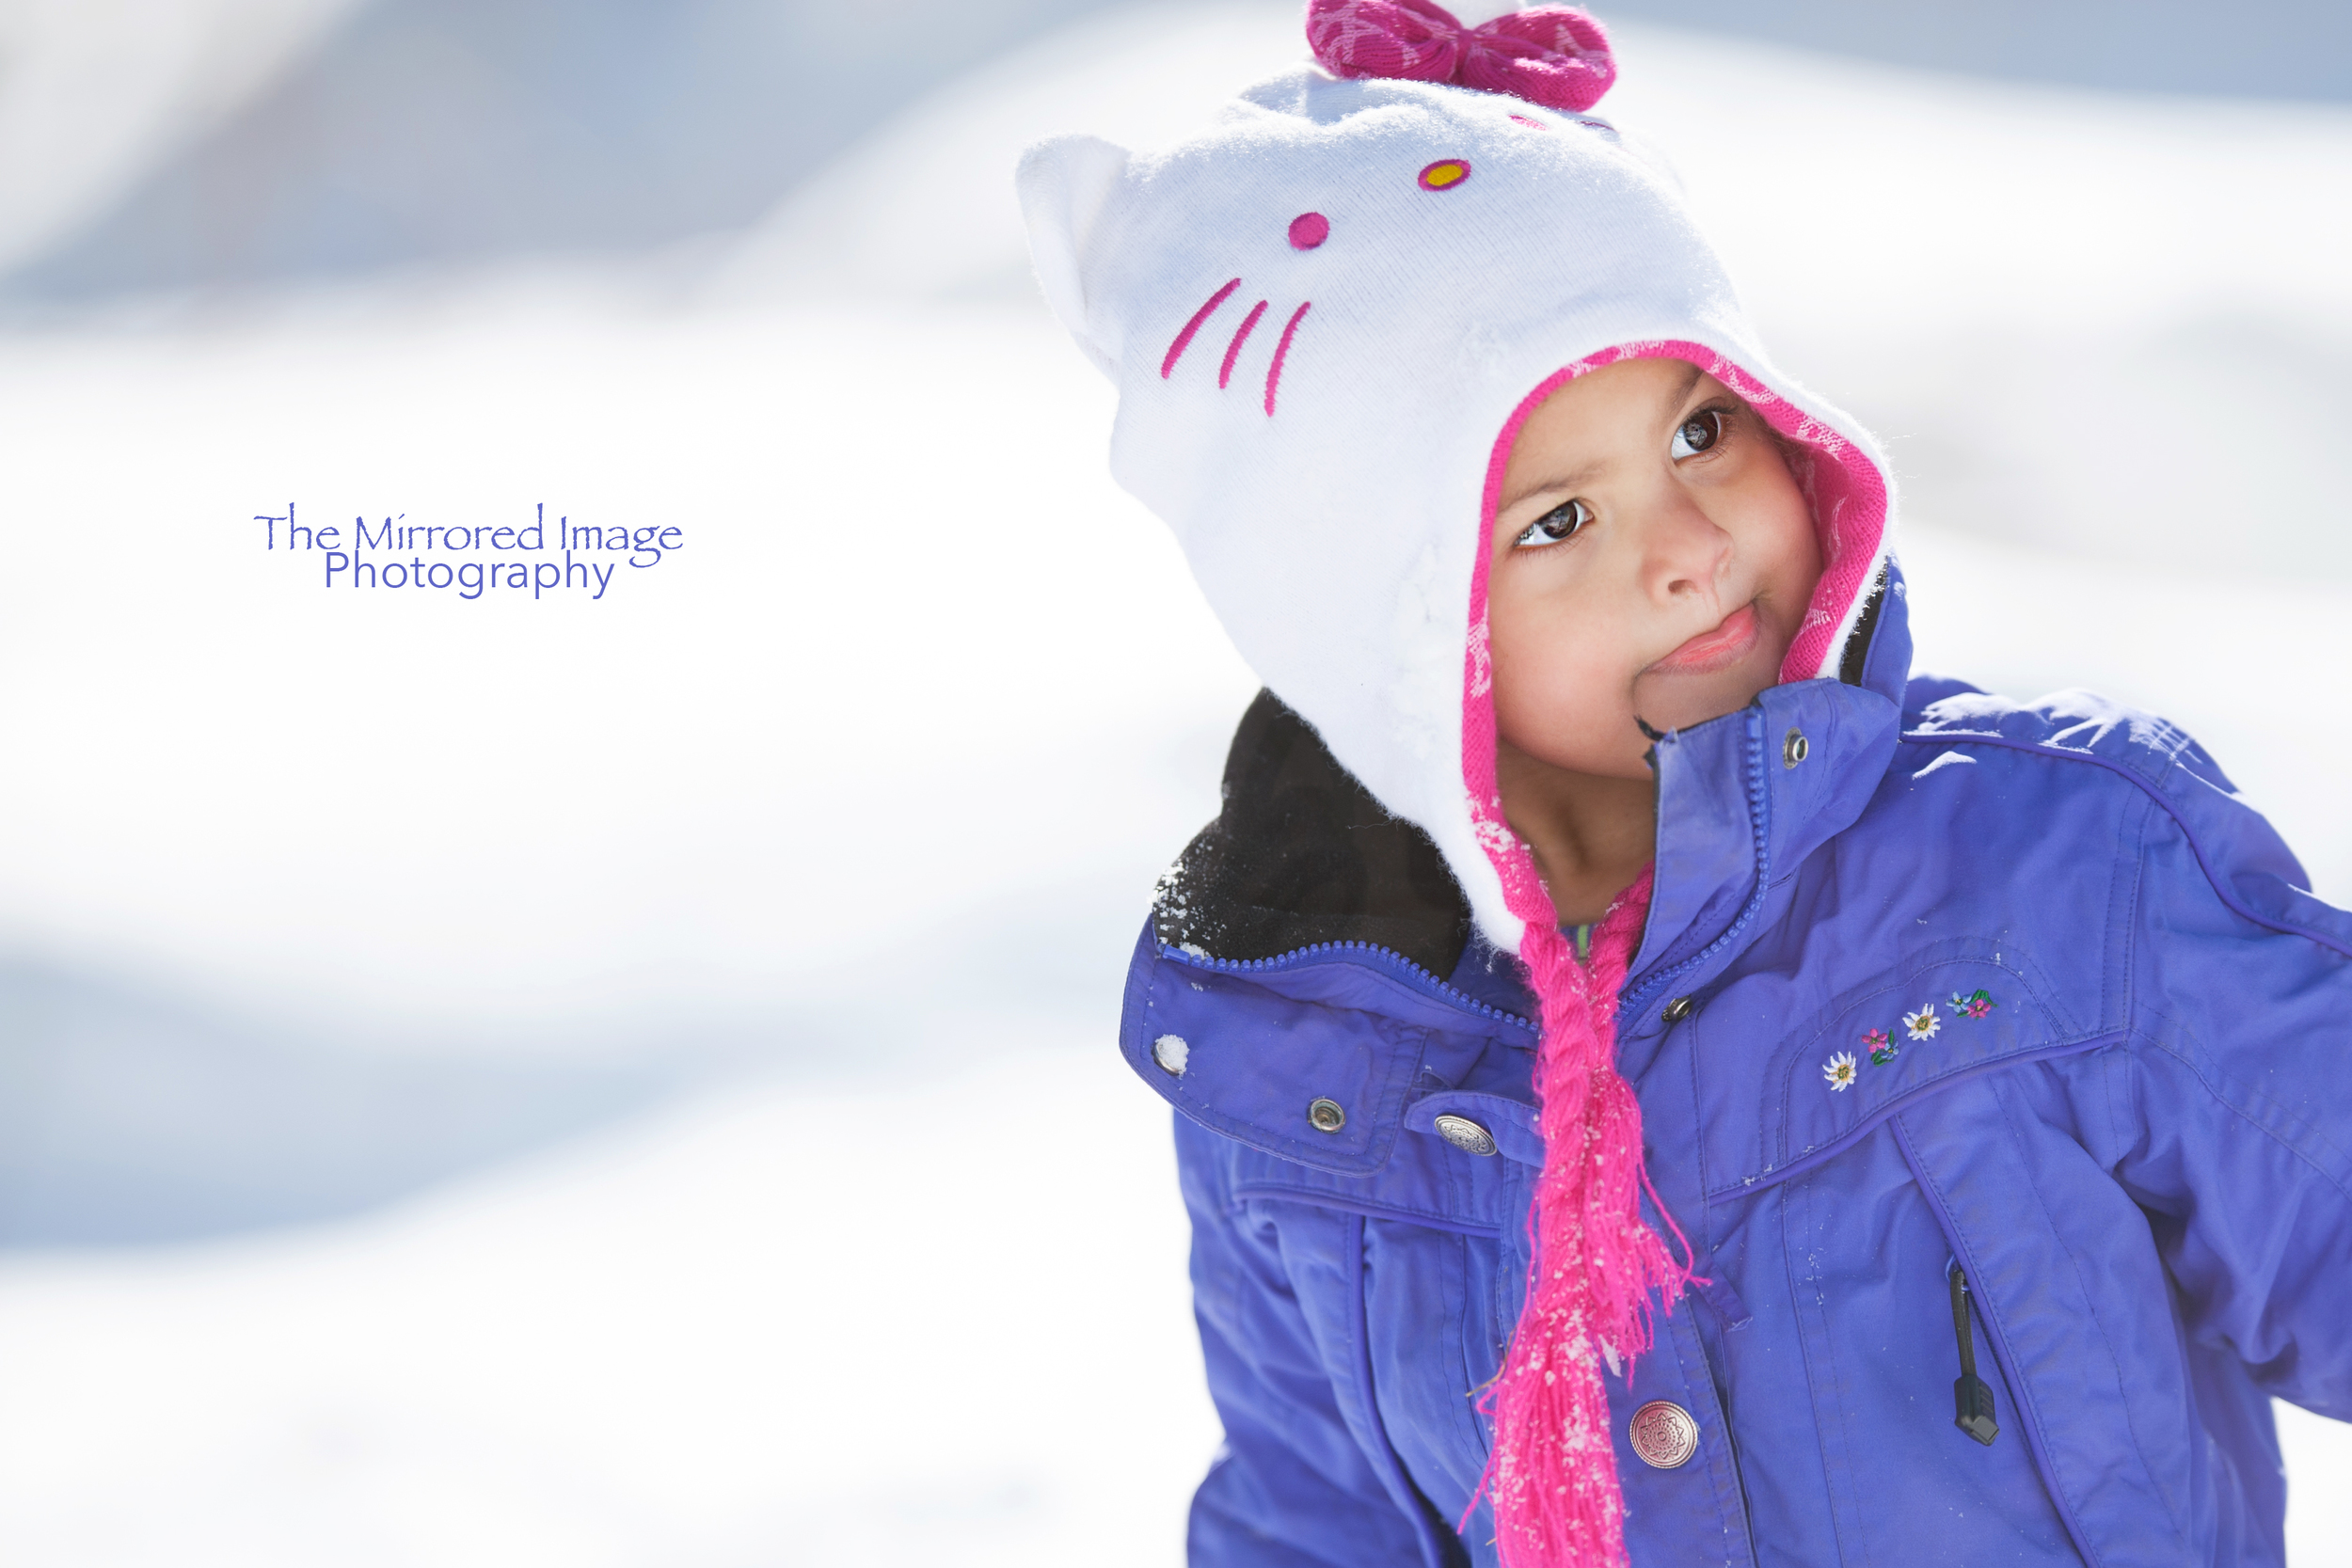 Professional Children's Portraits, Family Photography, Snow Angel, Snow Baby, Winter Portraits